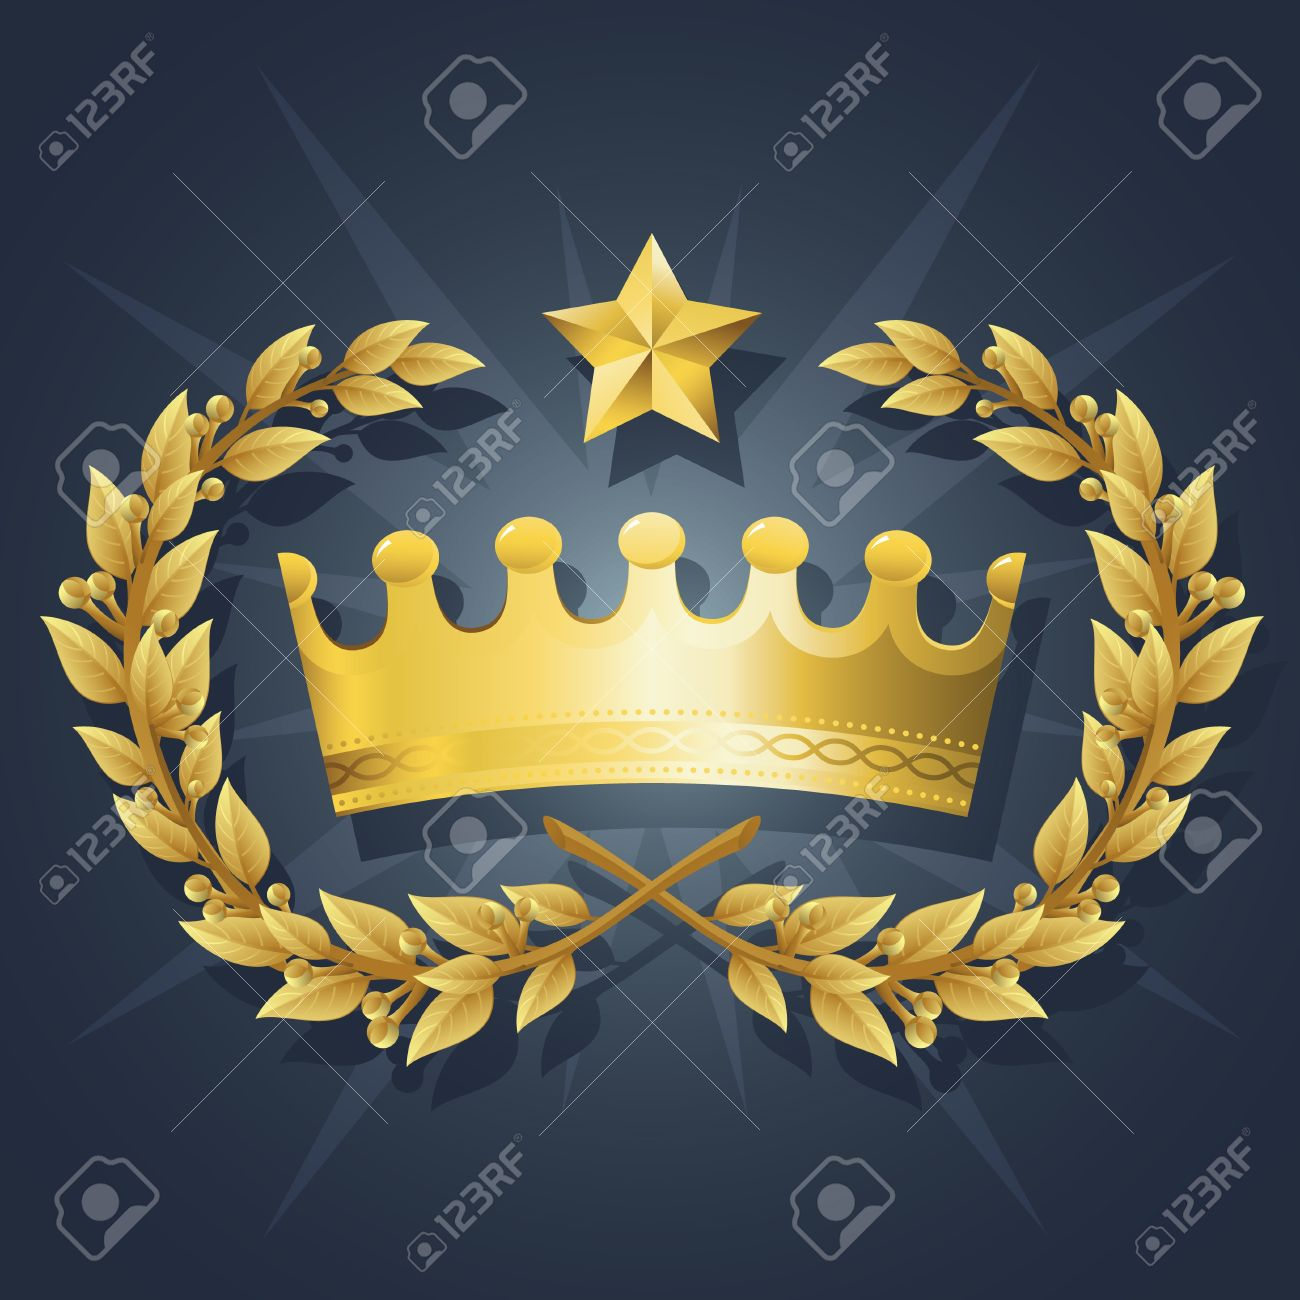 Illustration of Gold King Crown with Quality Laurel Wreath and Champion Star. Representations include: Power, Success, Victory, Quality, First Place, 1st, Best, Winner, MVP, honor. Stock Vector - 10535583